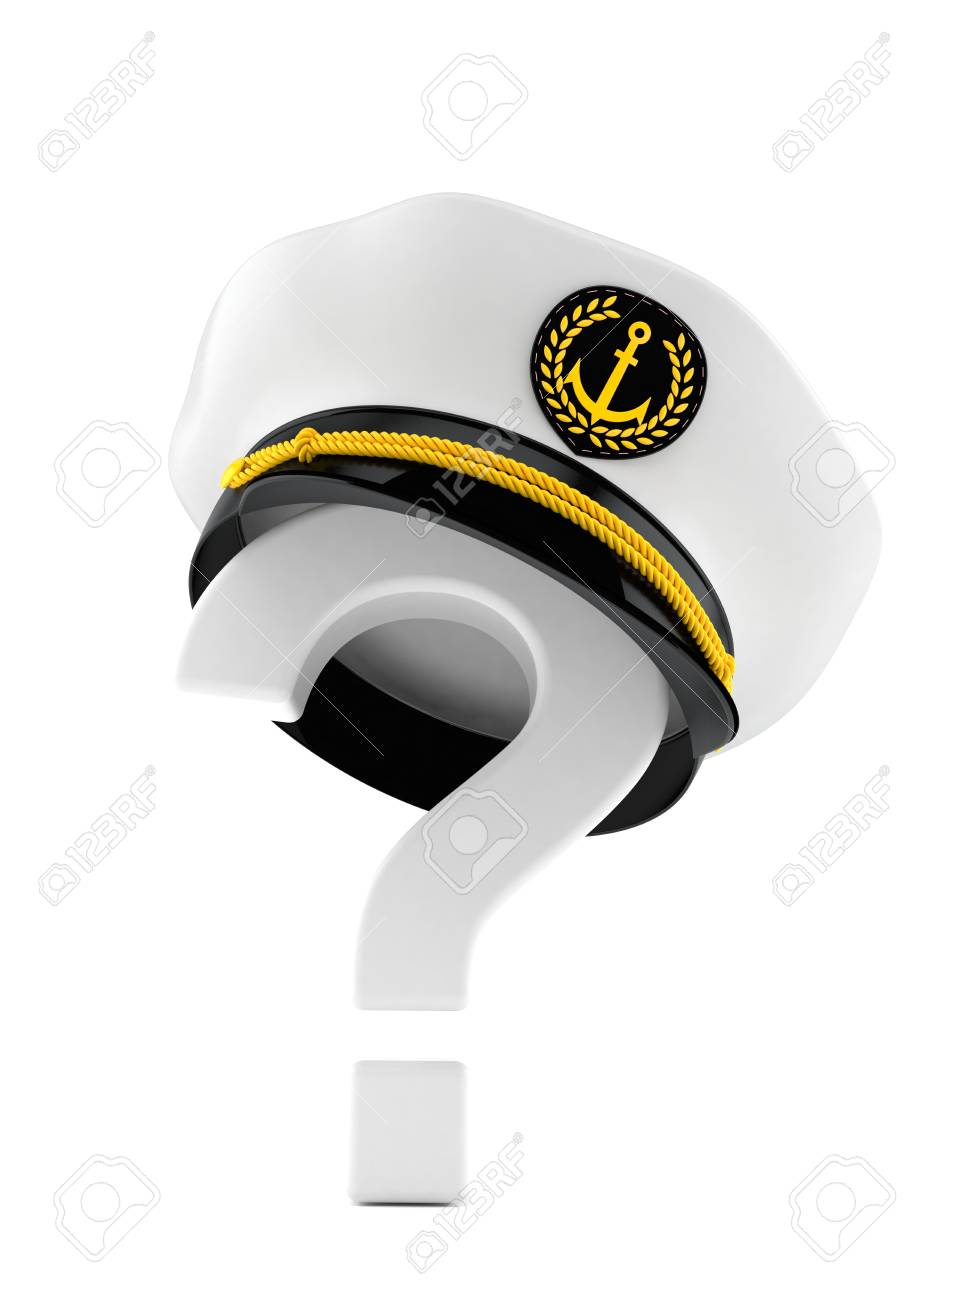 f153179ae8e Captain s hat with question mark isolated on white background Stock Photo -  83320440